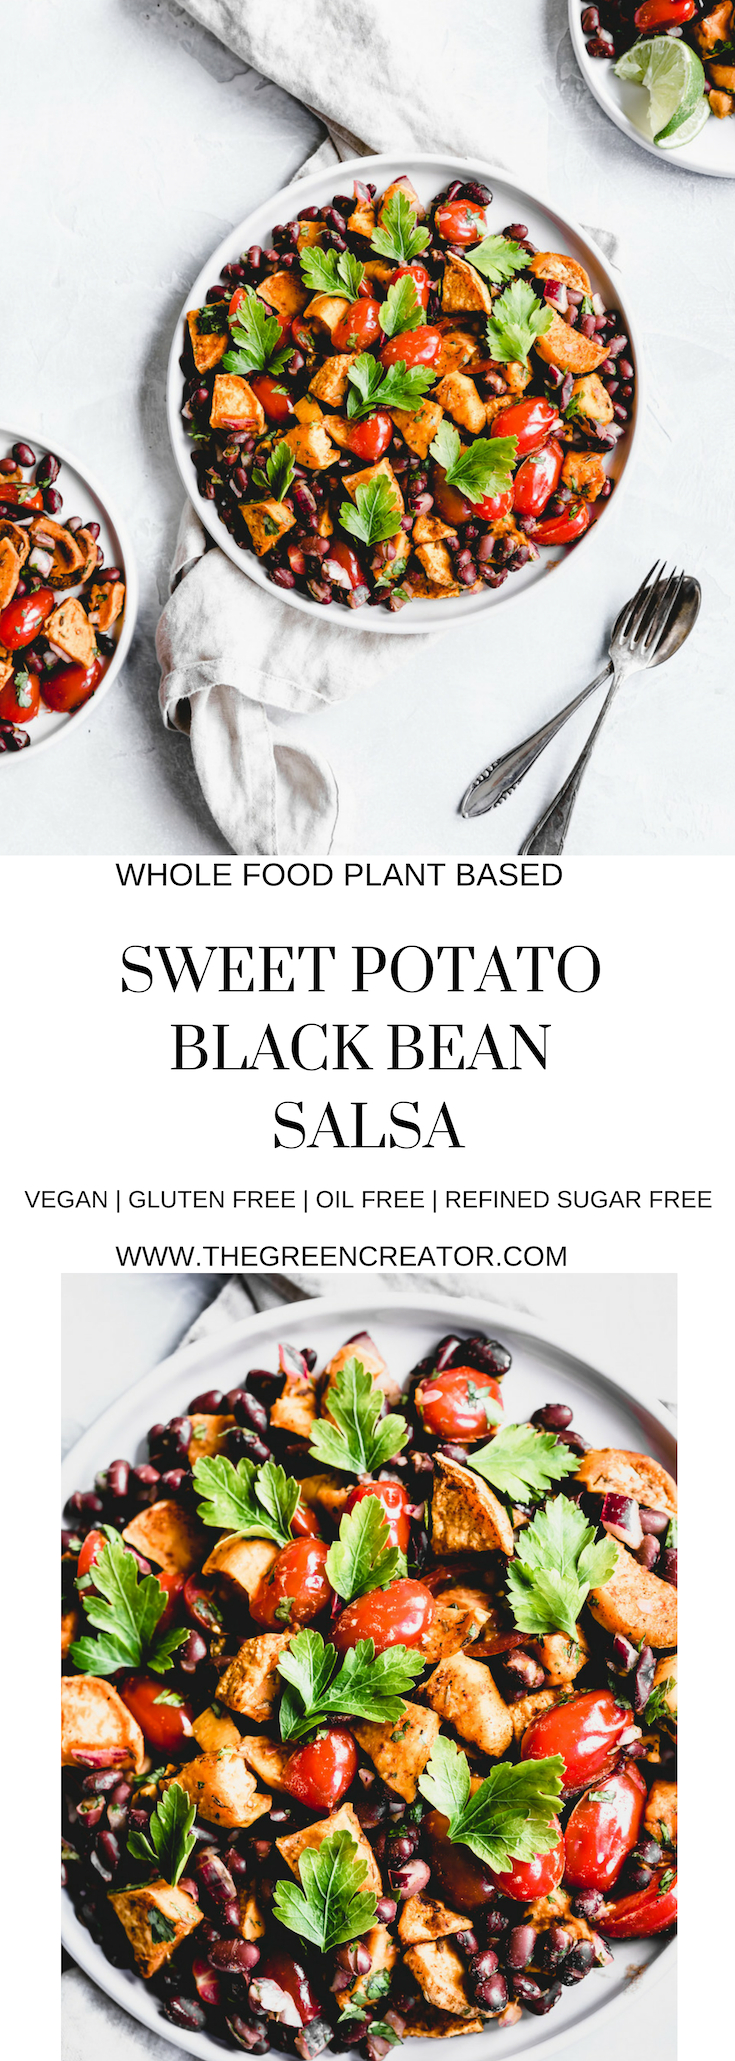 Sweet Potato Black Bean Salsa